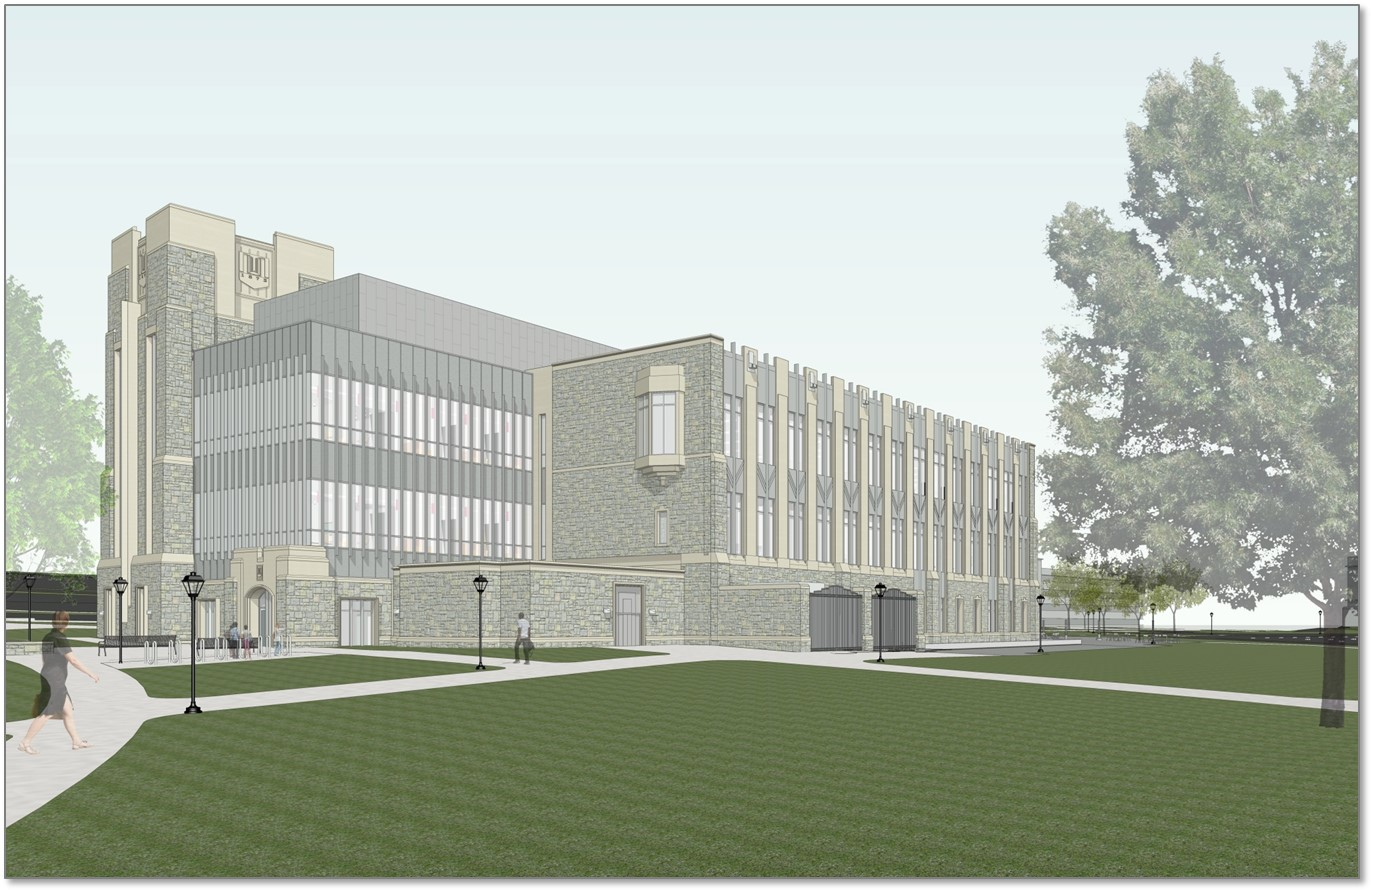 Architectural rendering of the new classroom building from the southwest.